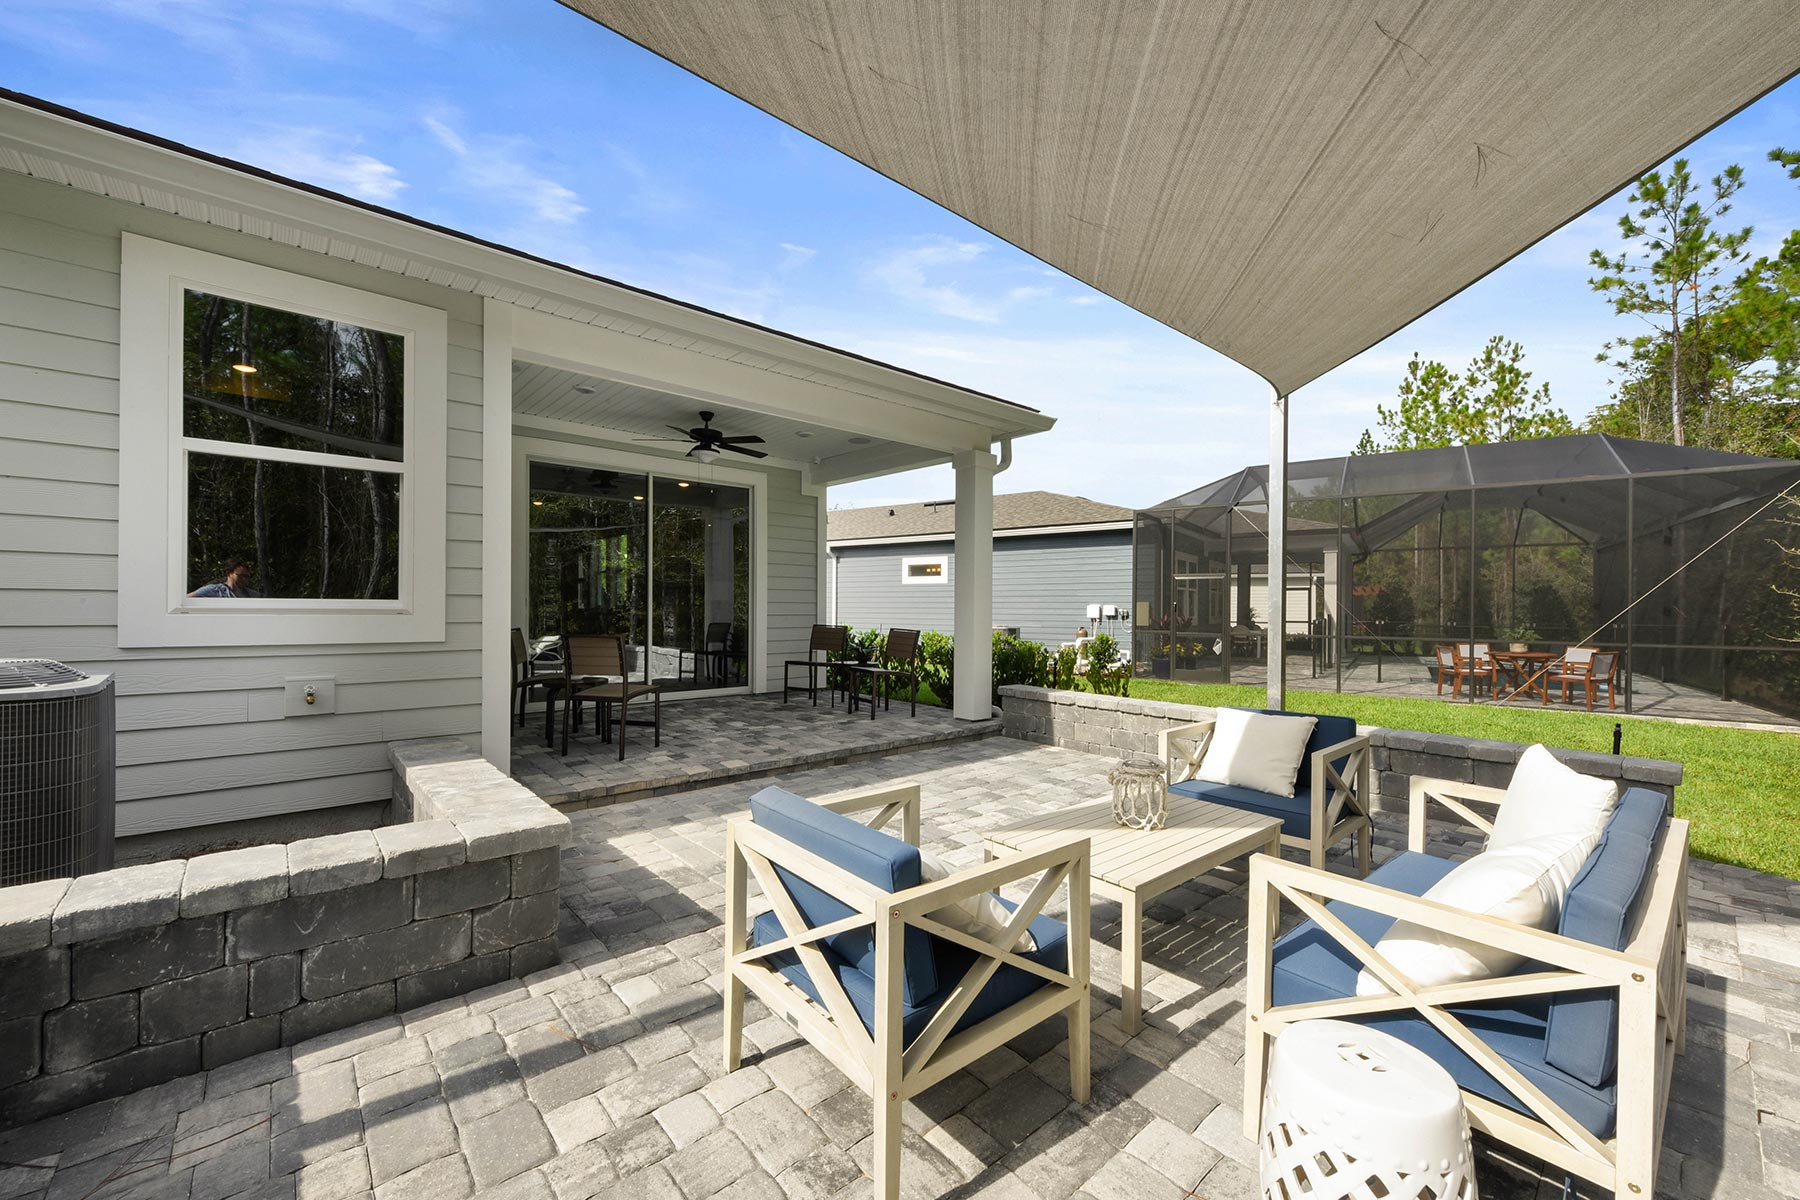 Ocean Plan Patio at RiverTown - WaterSong in St. Johns Florida by Mattamy Homes